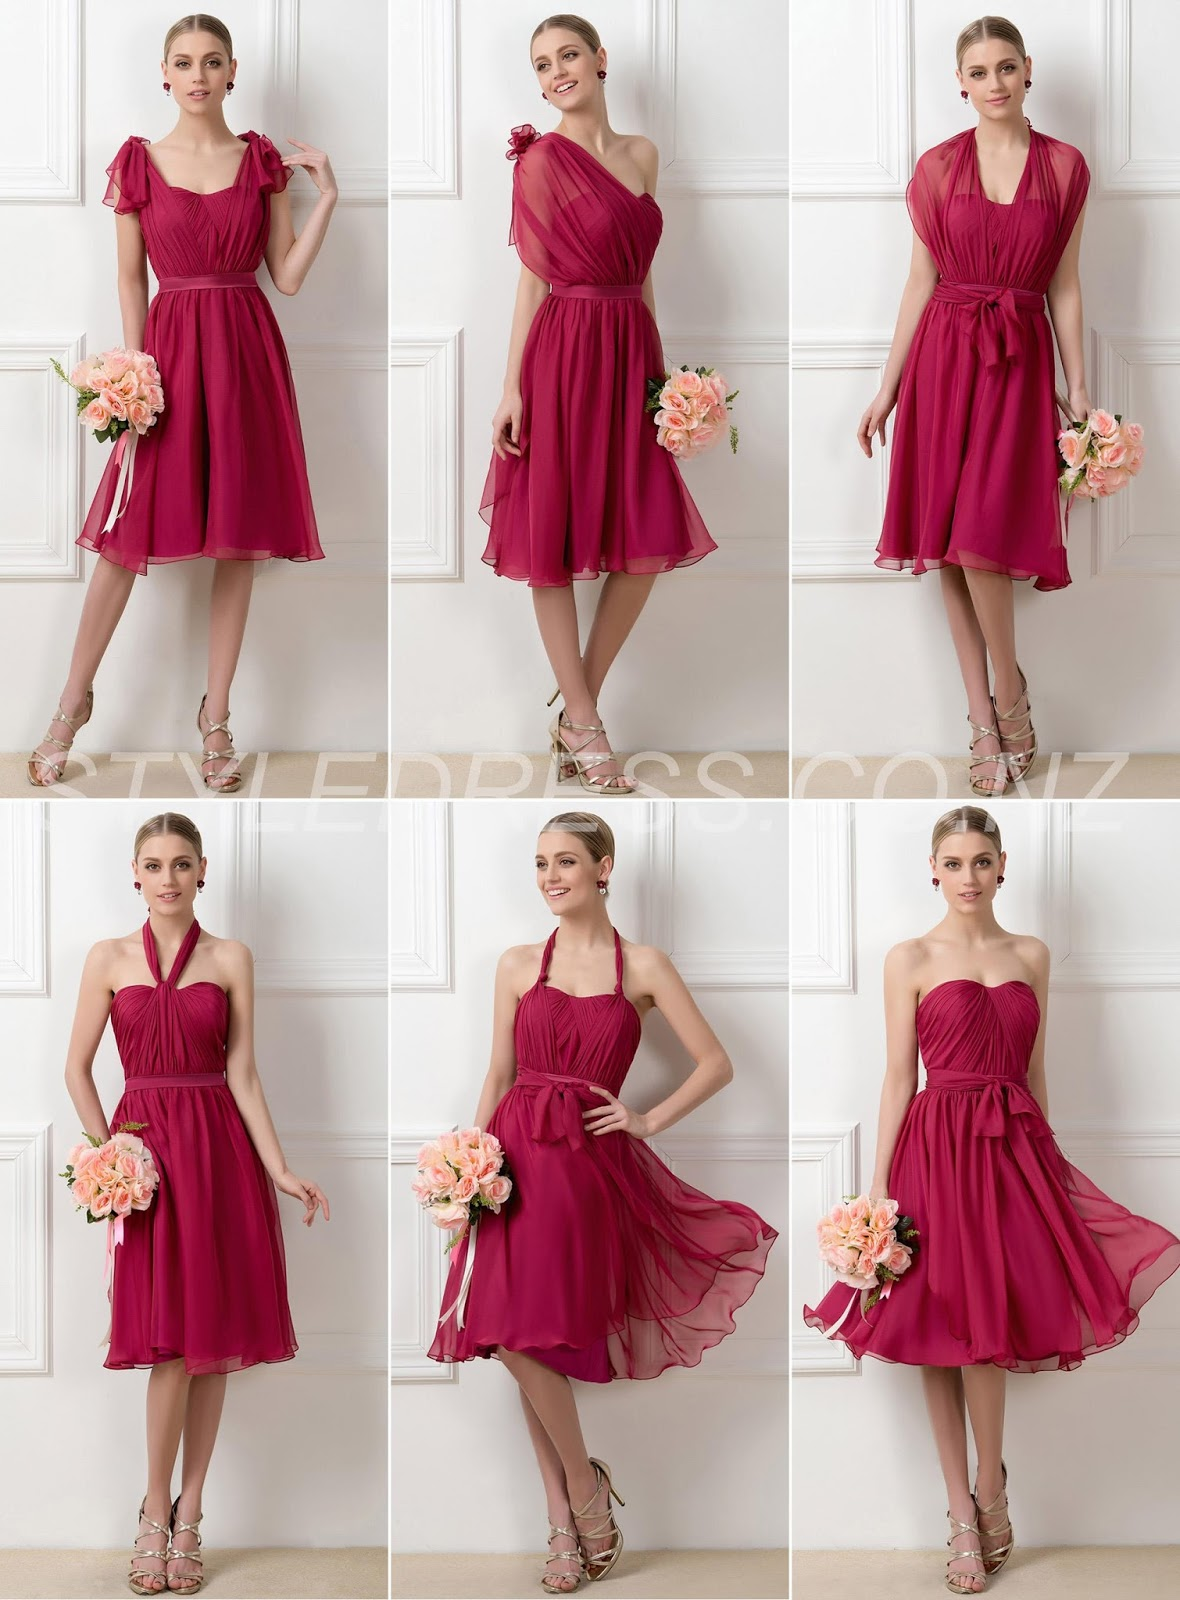 Charming A-Line Sweetheart Knee-Length Convertible Zipper-Up Bridesmaid Dress